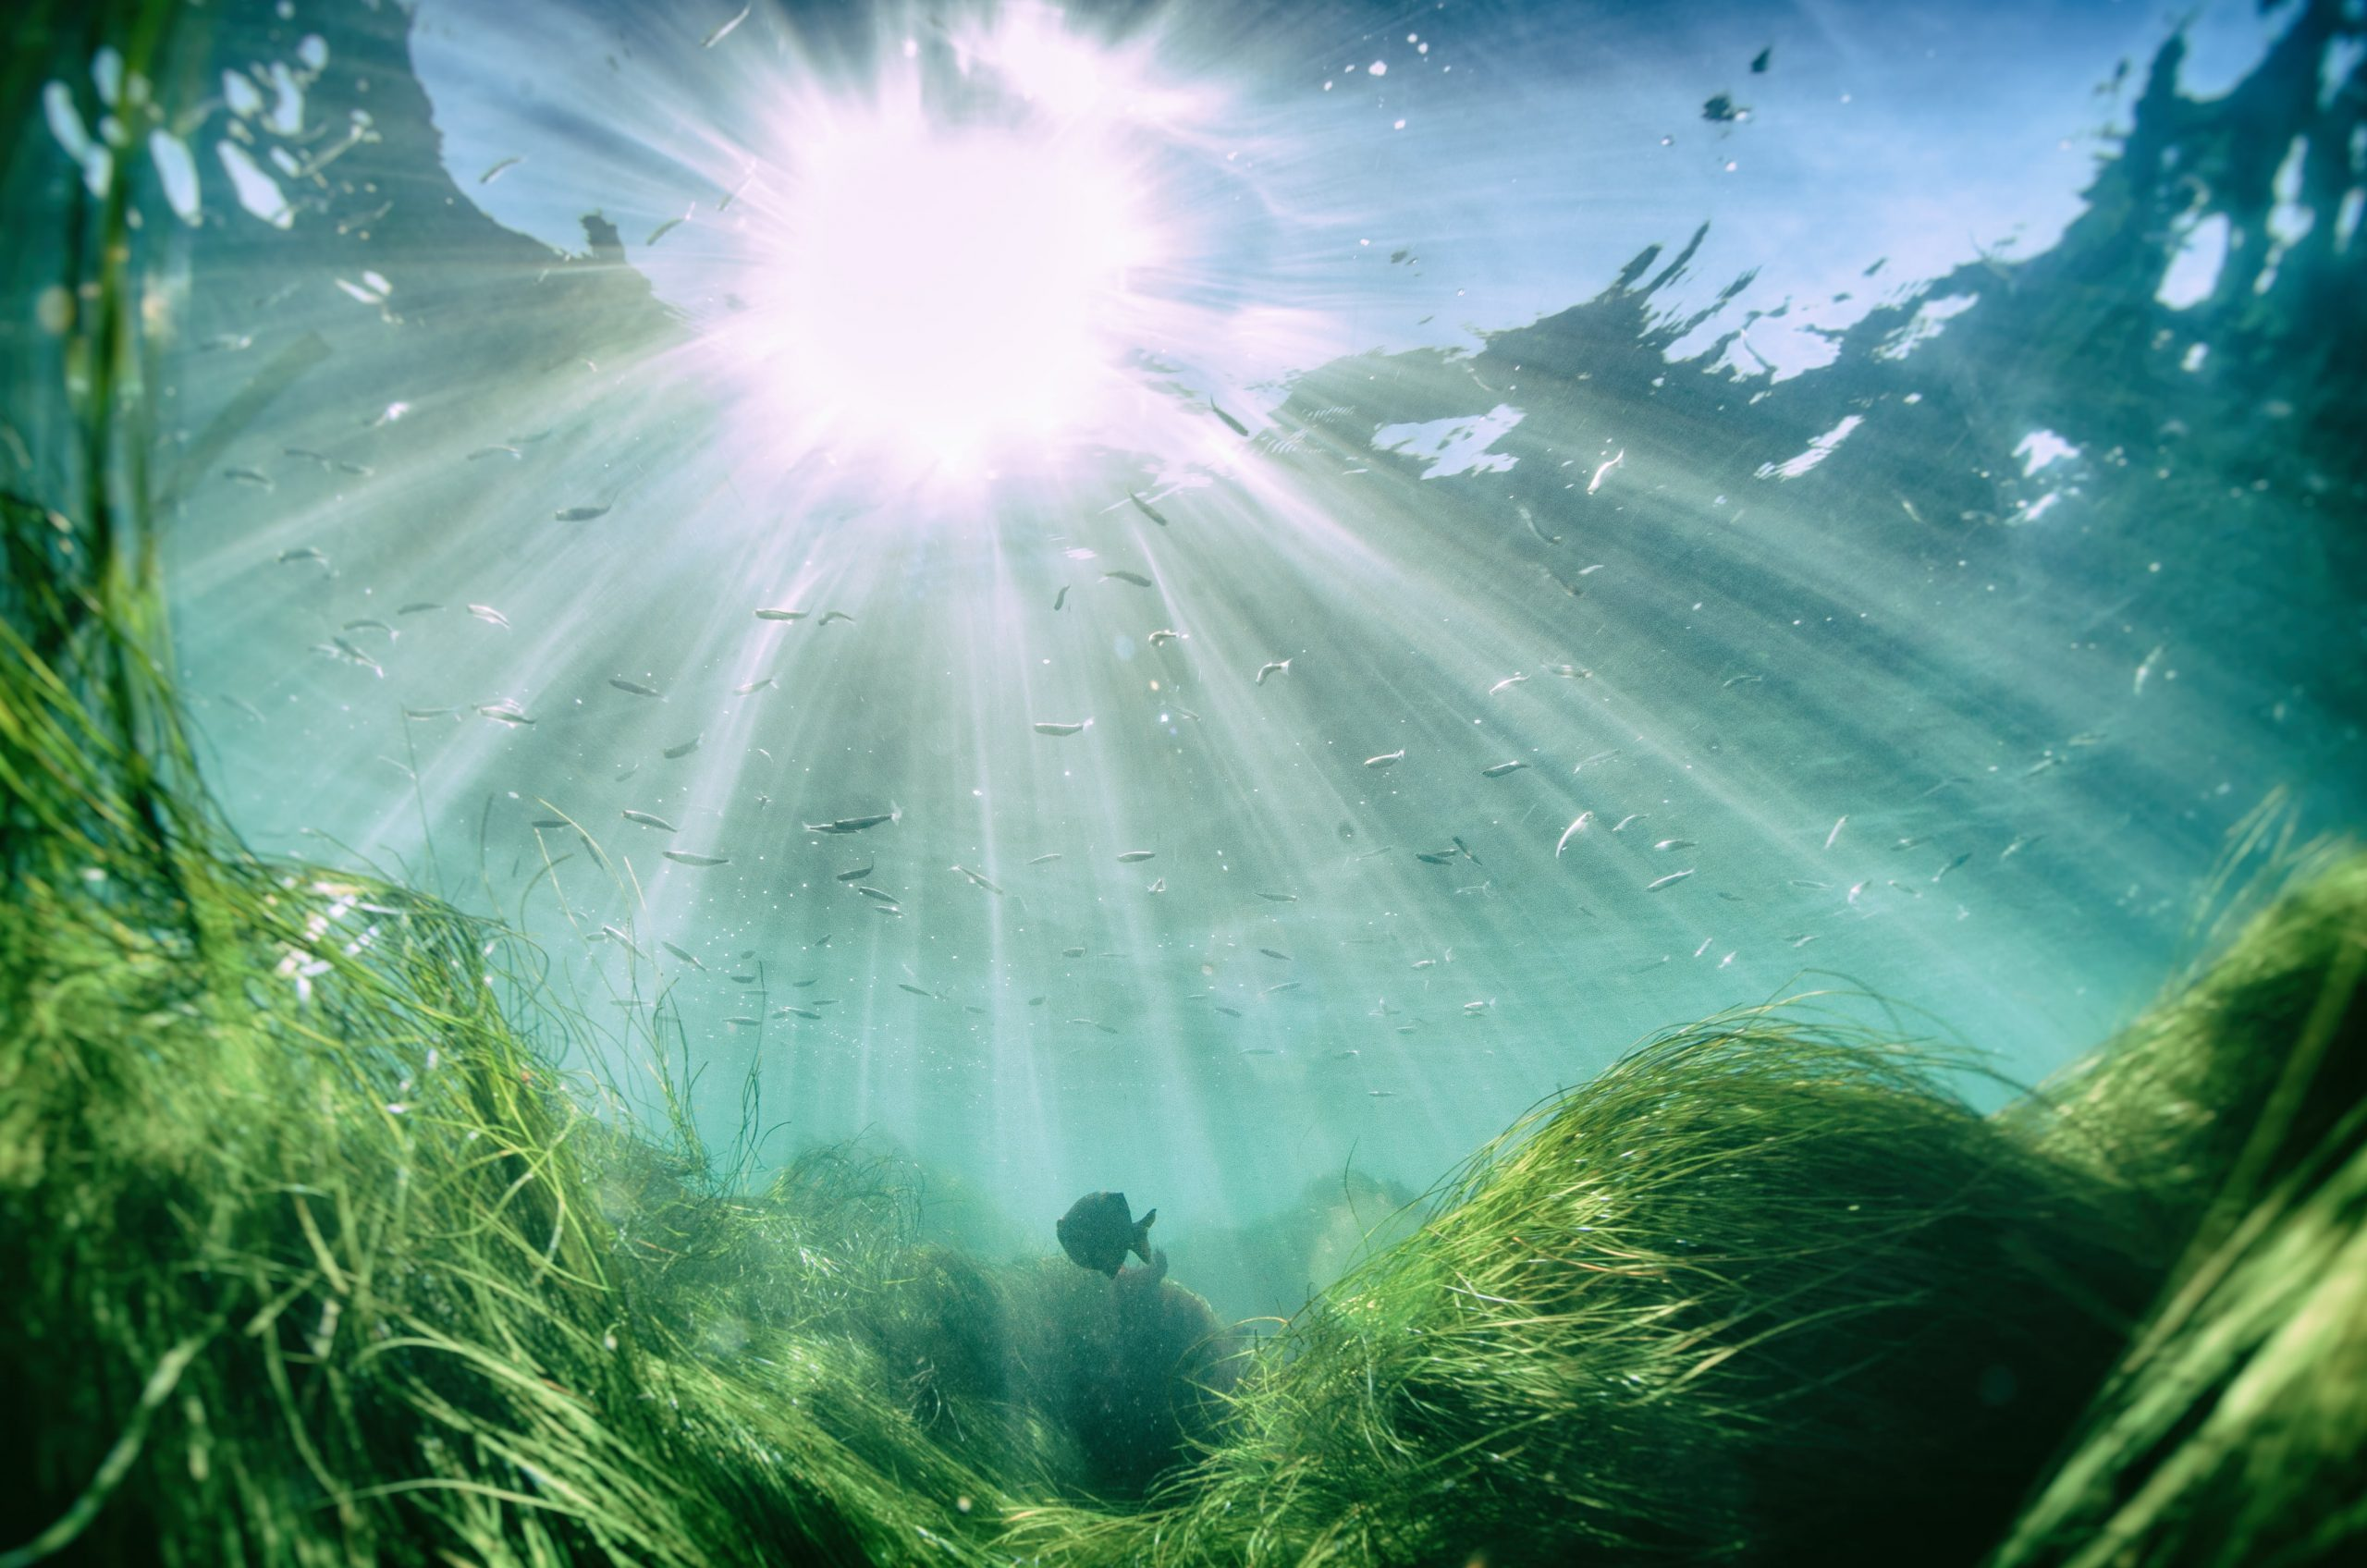 Underwater scene with fish and seaweed